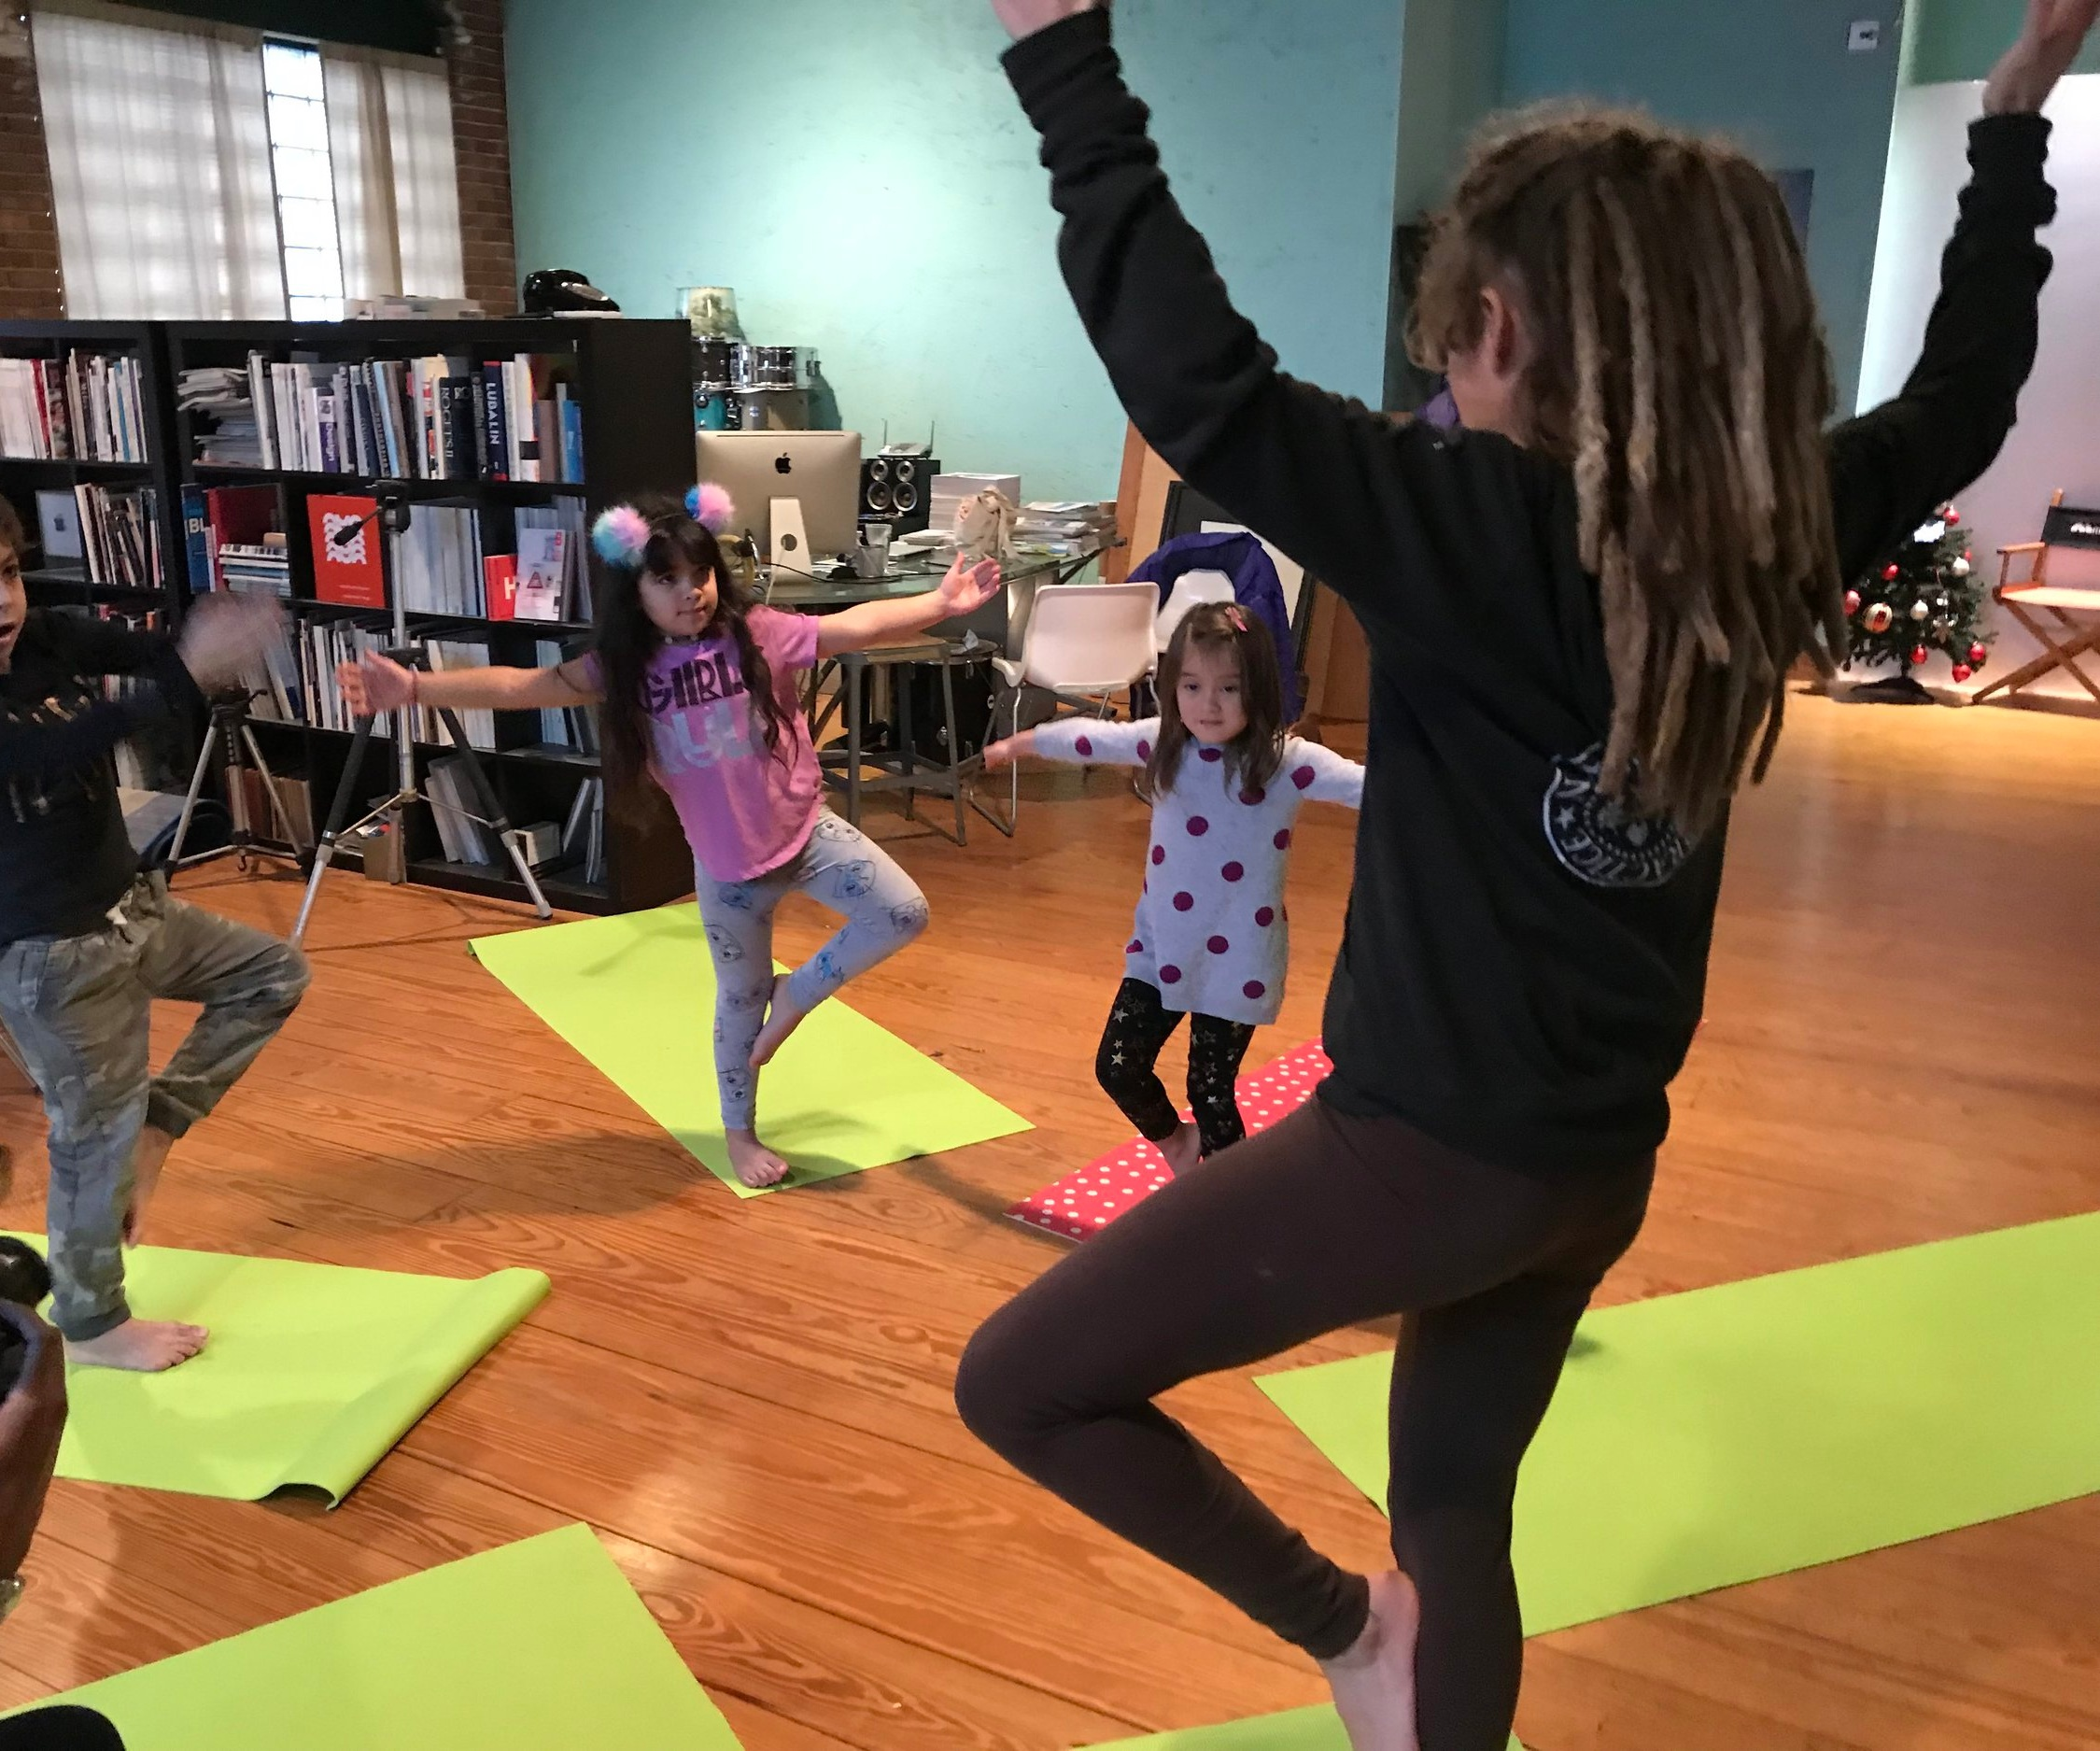 Colorful Kids Yoga - A weekly kids yoga and art class designed to teach inner-city youth the benefits of movement, breathing, calming skills, and self-esteem.